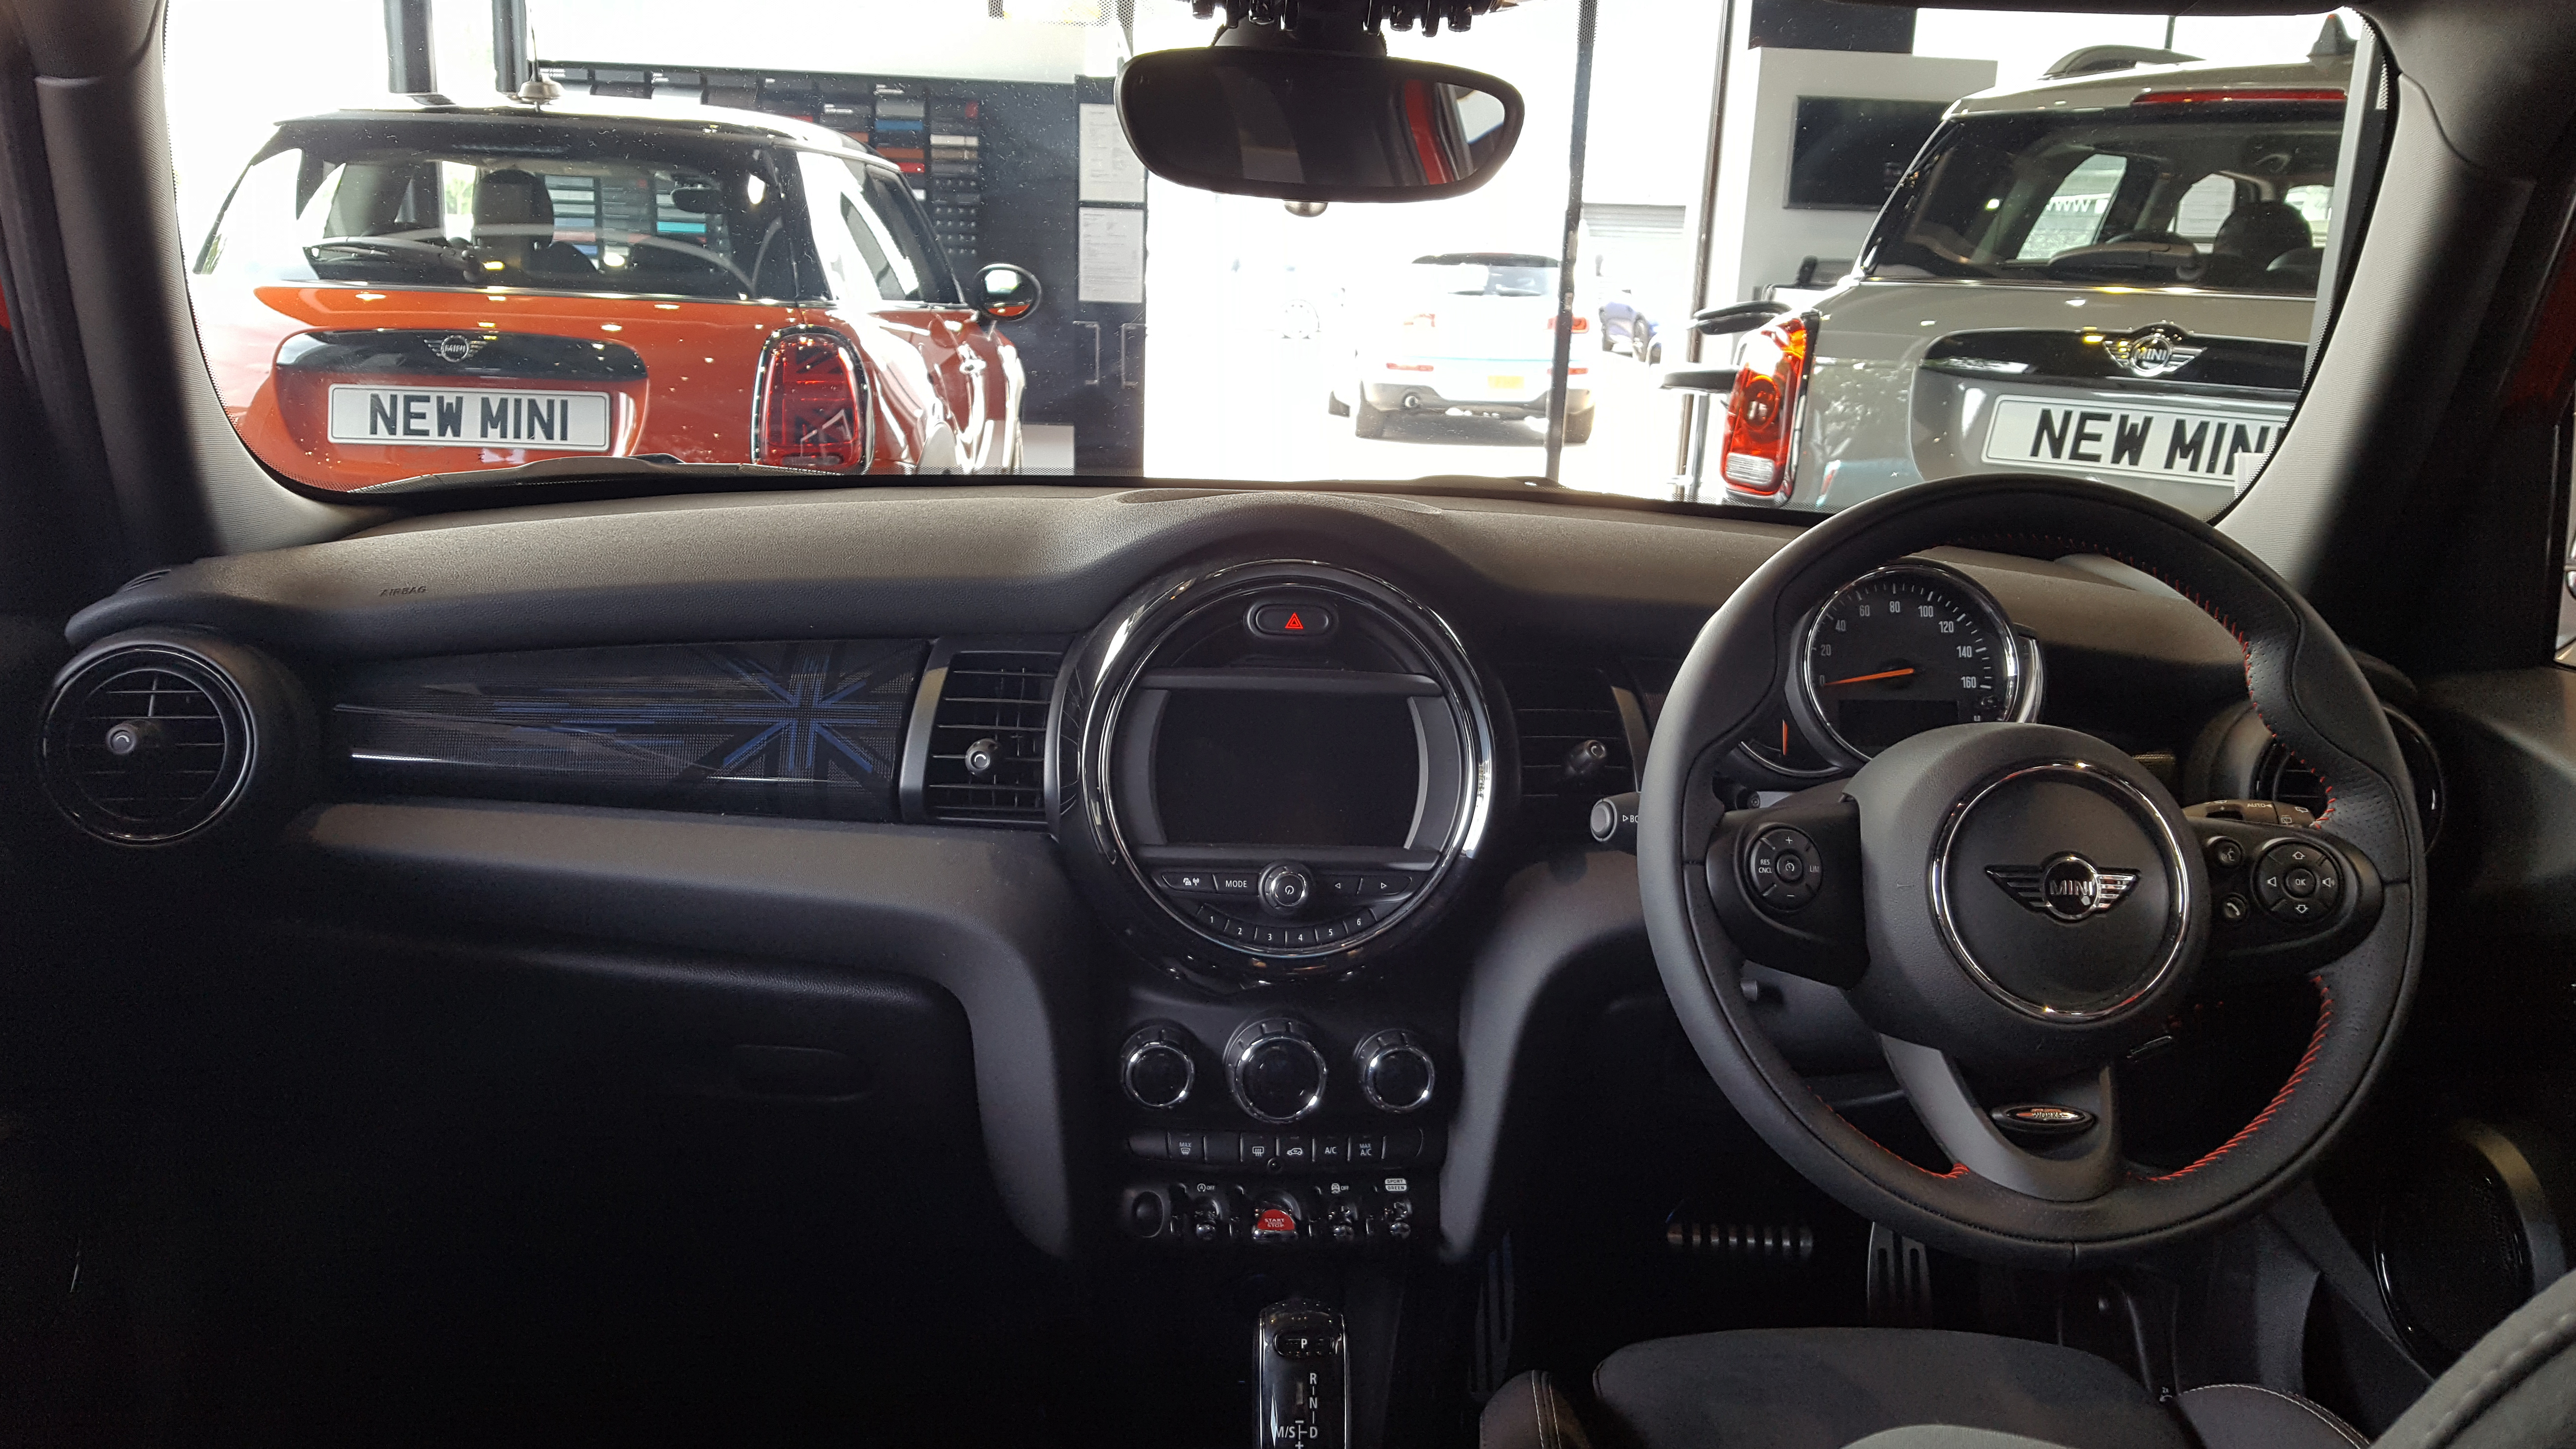 File:2018 Mini Cooper 5 Door Hatch 1.5 Interior